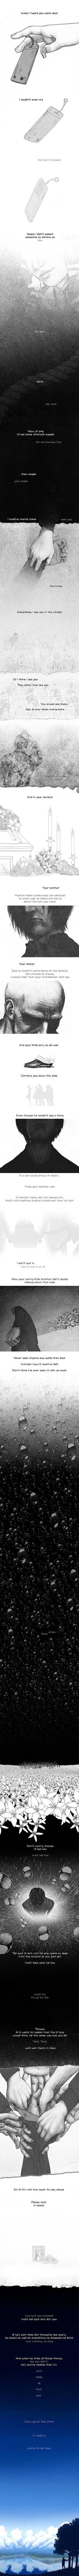 """Your suicide."" by linnyxito Pretty sad when I read this. Reminded me of Mike. Beautifully illustrated."